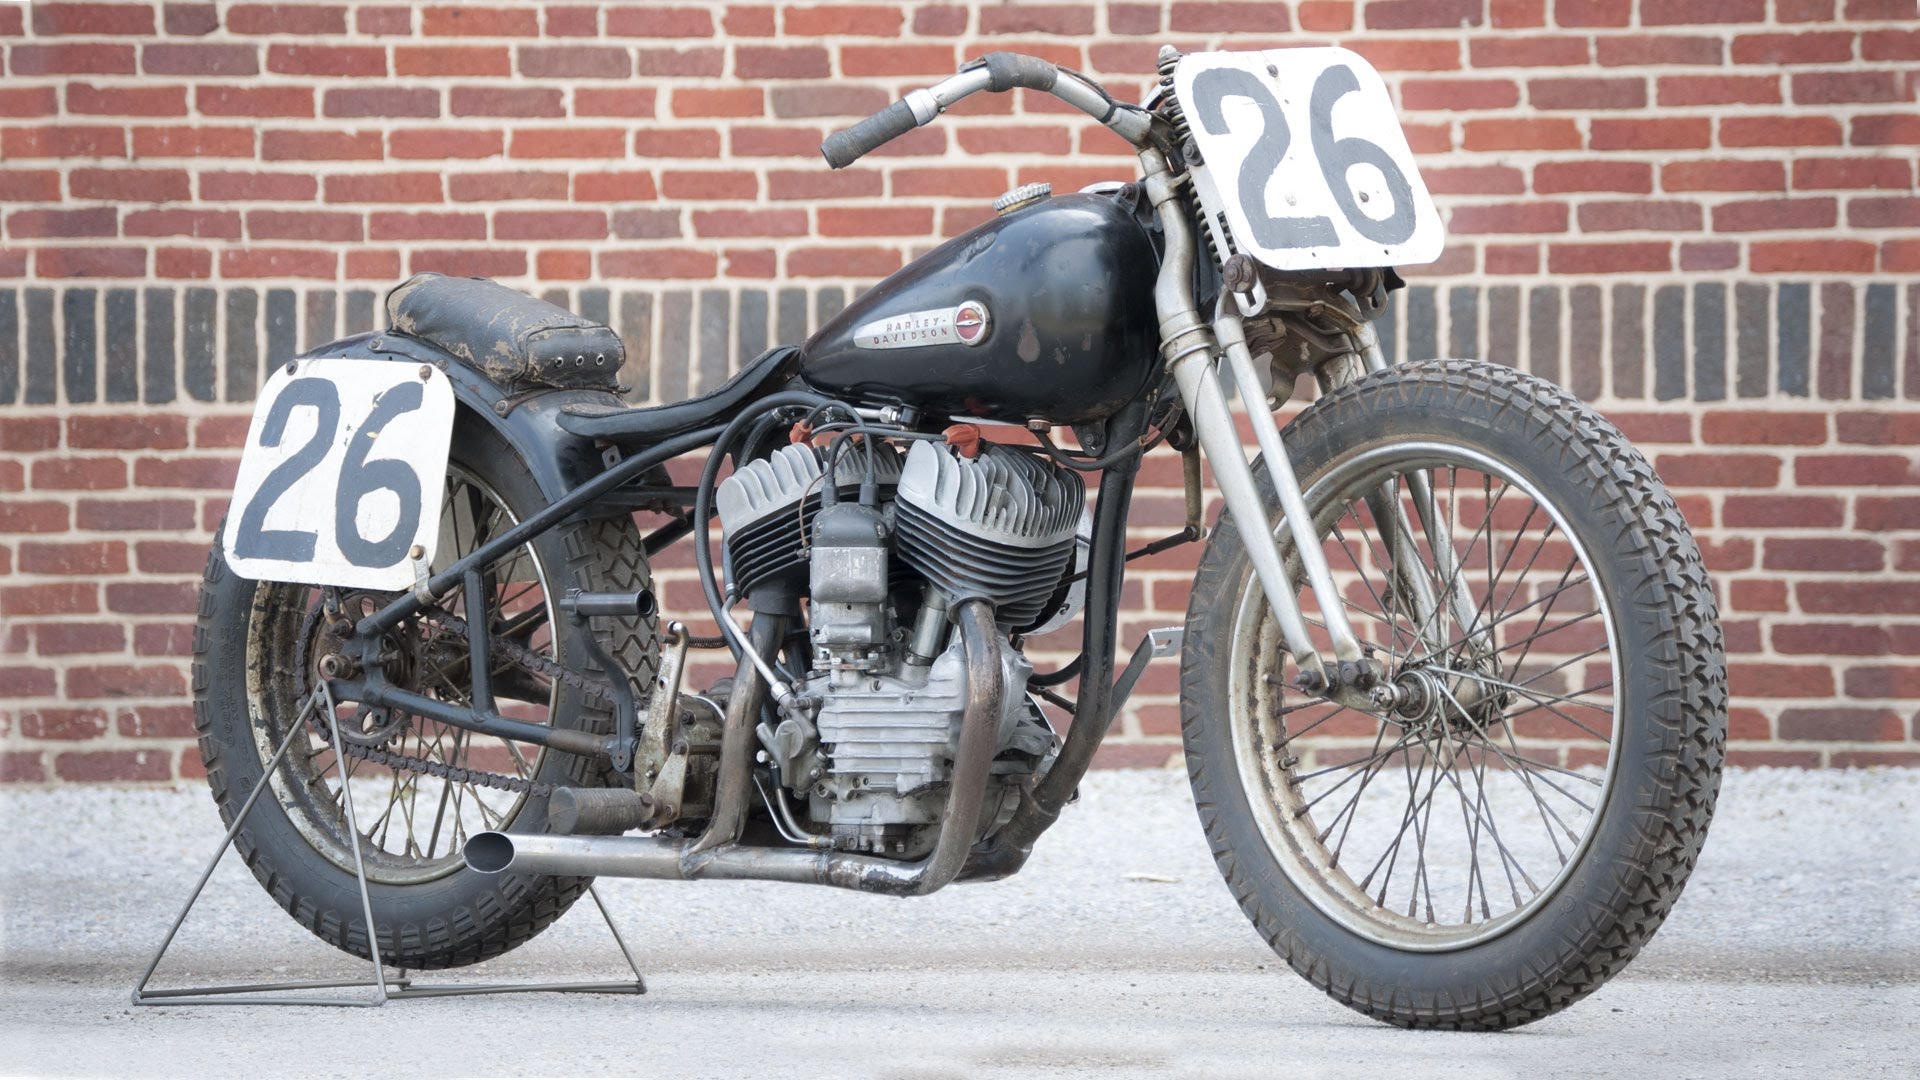 hight resolution of classic motorcycle wiring diagram wiring diagramsimple motorcycle wiring diagram vintage race bikes wiring diagramclassic motorcycle wiring